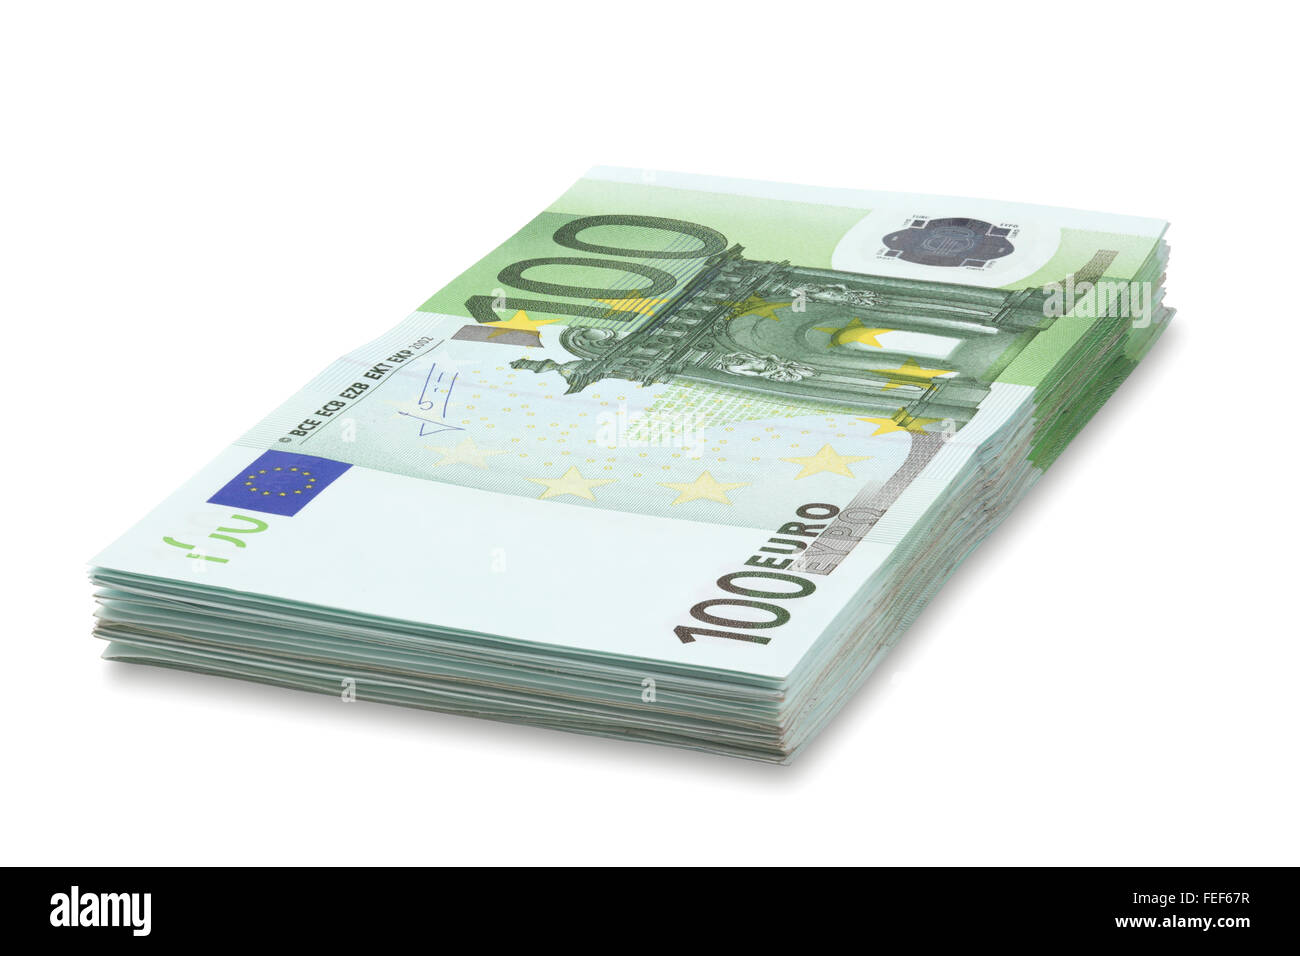 Pile of one hundred euro banknotes, isolated on the white background, clipping path included. Full focus. - Stock Image